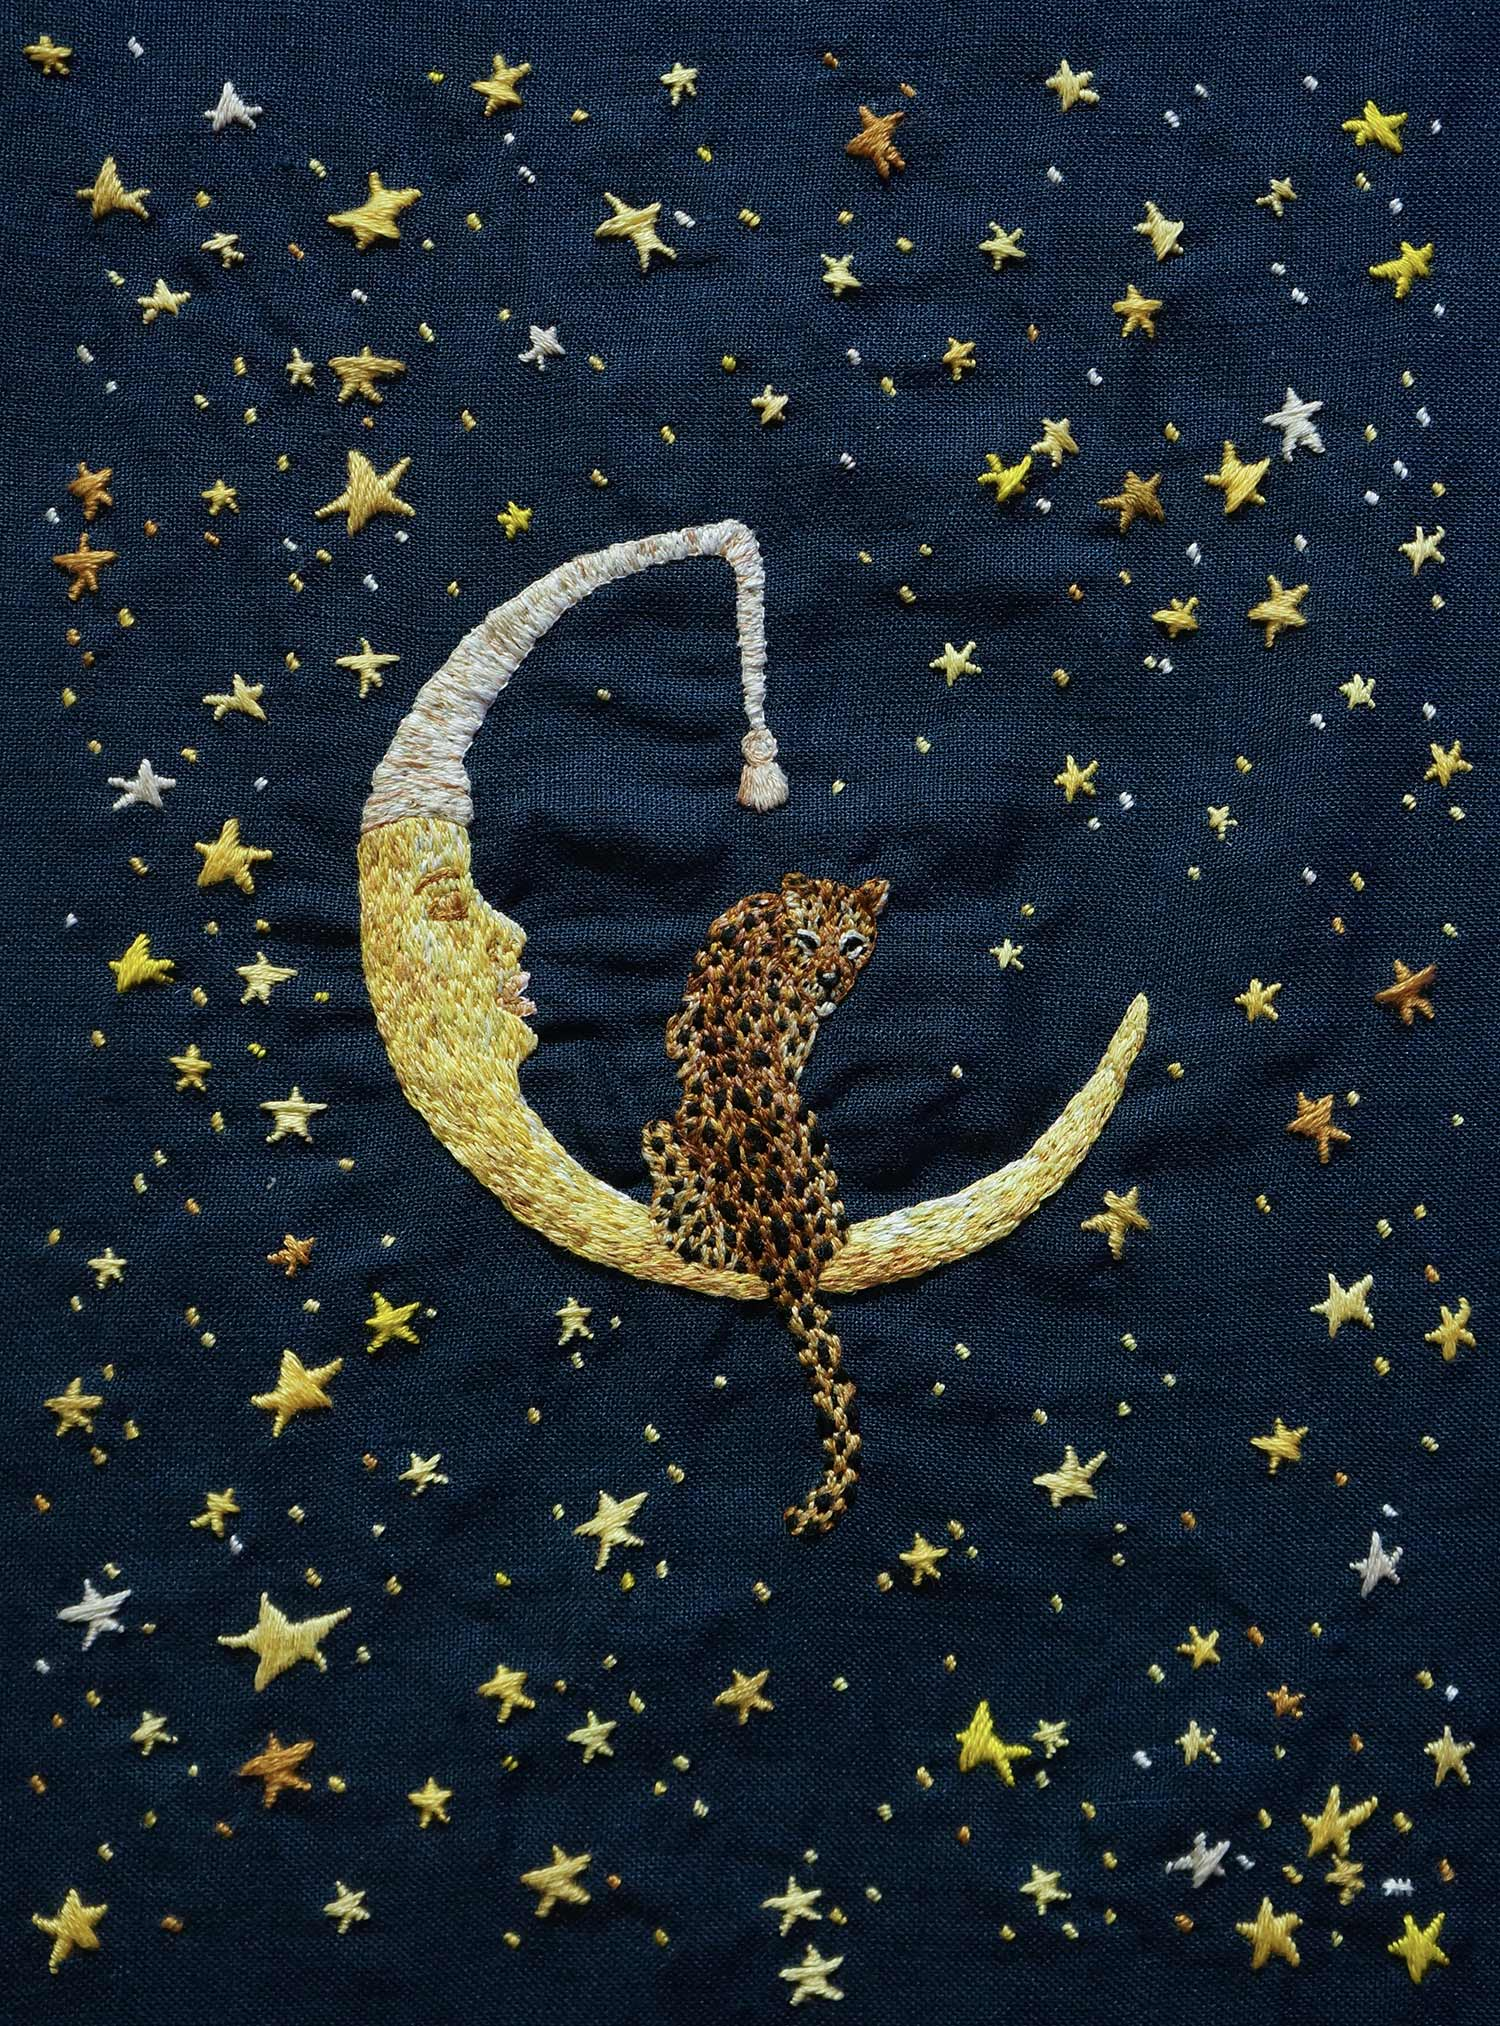 arianehaas_illustration_embroidery_71.jpg